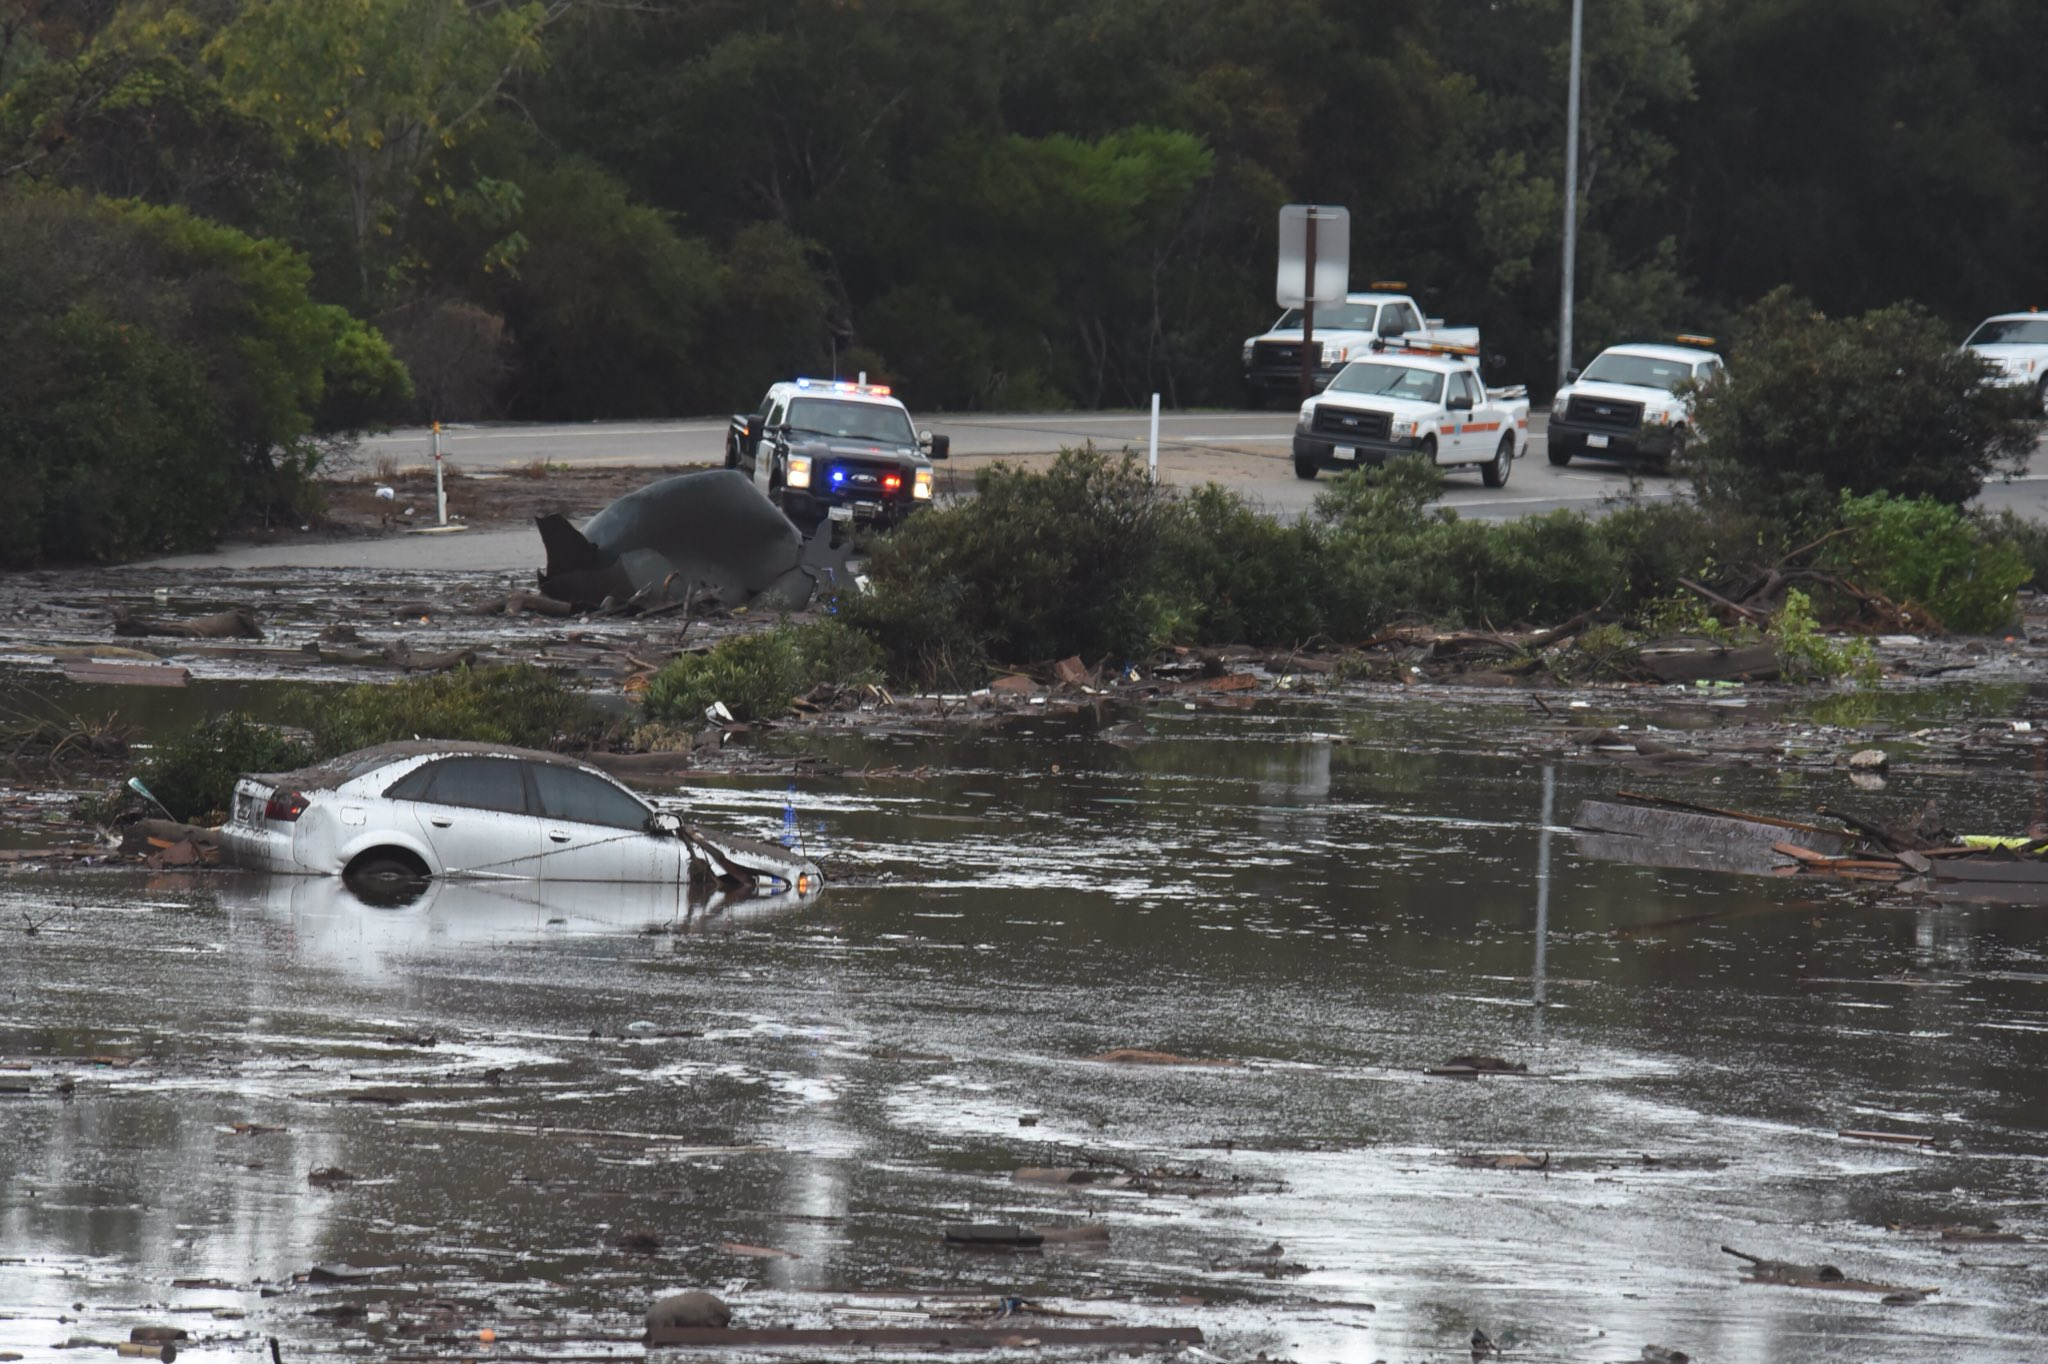 The US 101 Freeway at the Olive Mill Road overpass flooded with runoff water from Montecito Creek. (Photo & Caption: Mike Eliason / Santa Barbara County Fire)